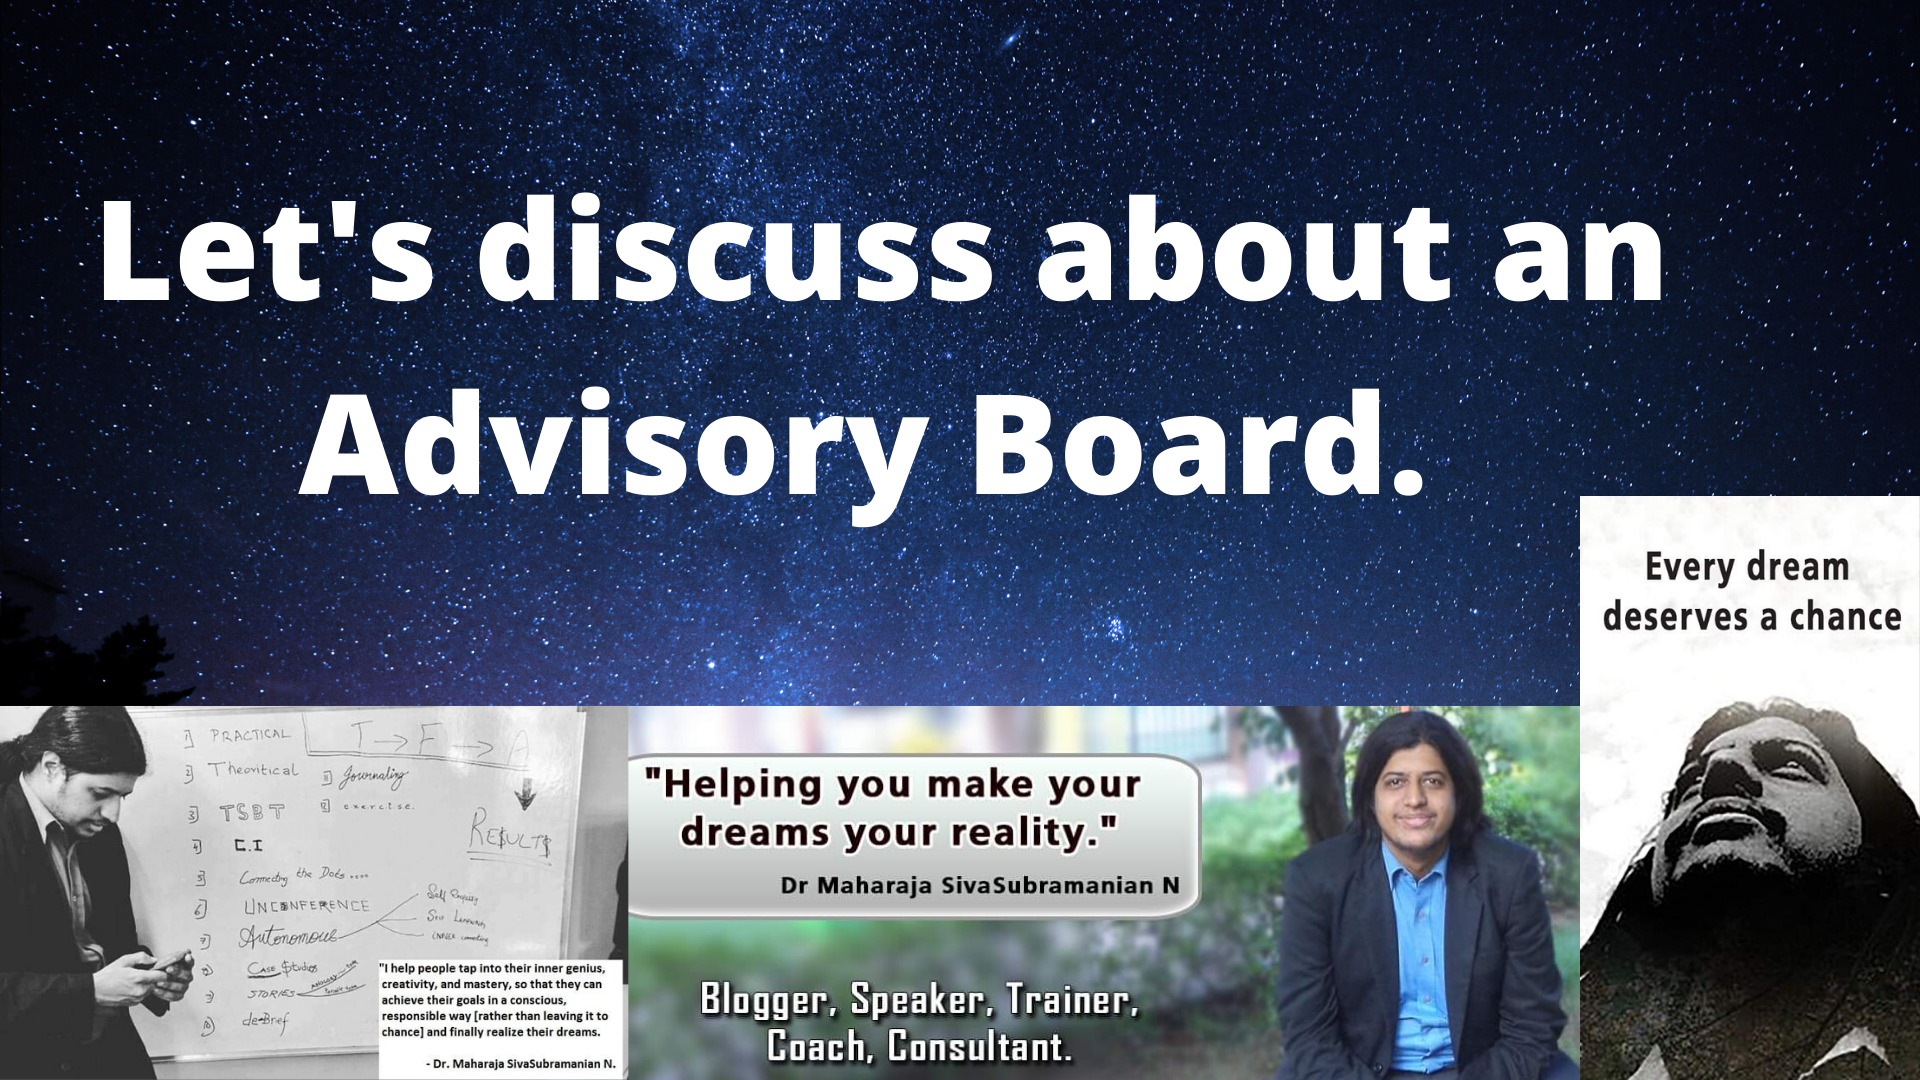 Advisory Board. Let's discuss about an Advisory Board.